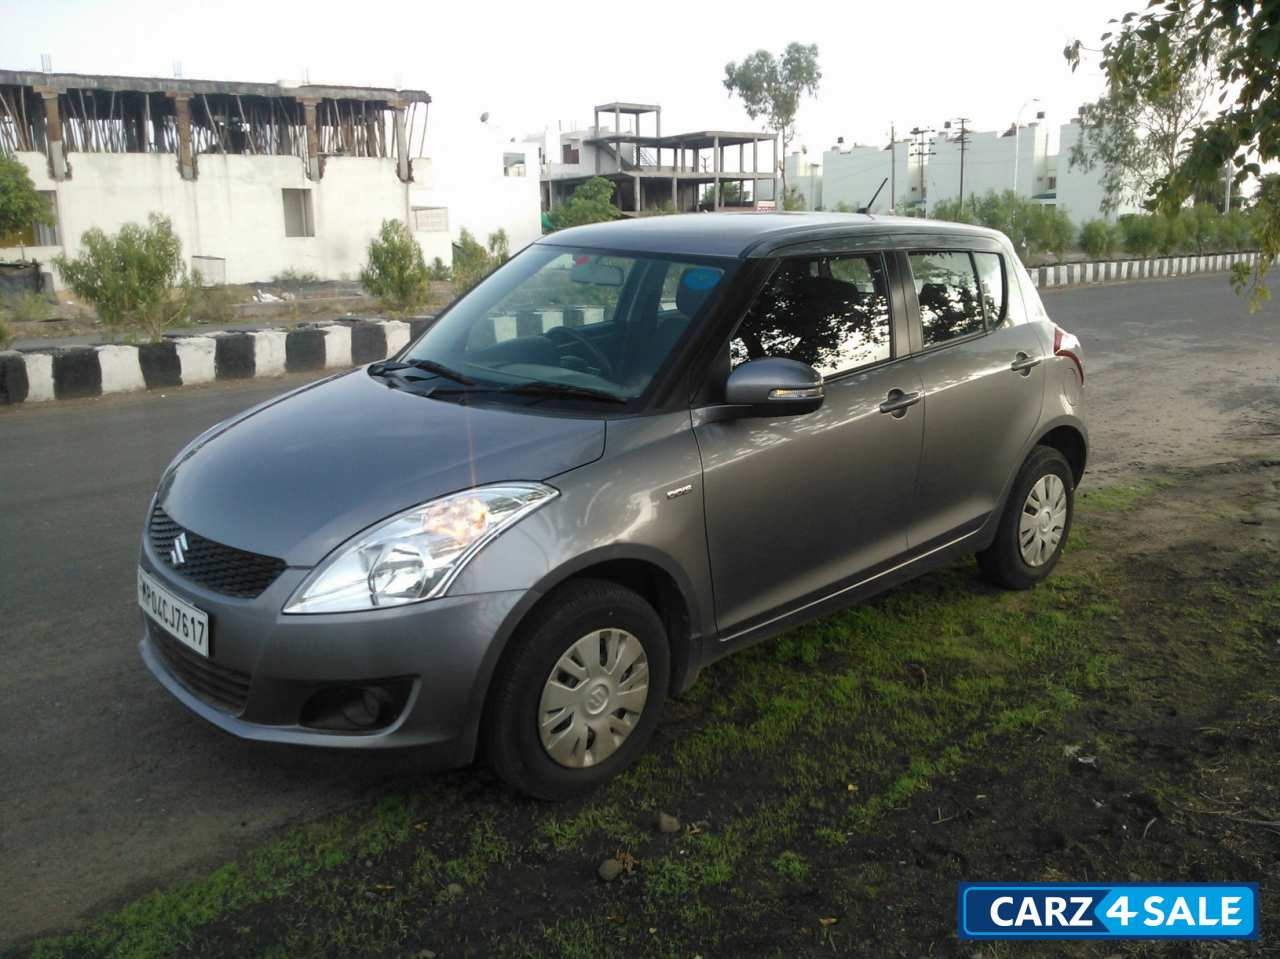 Suzuki Swift Diesel For Sale